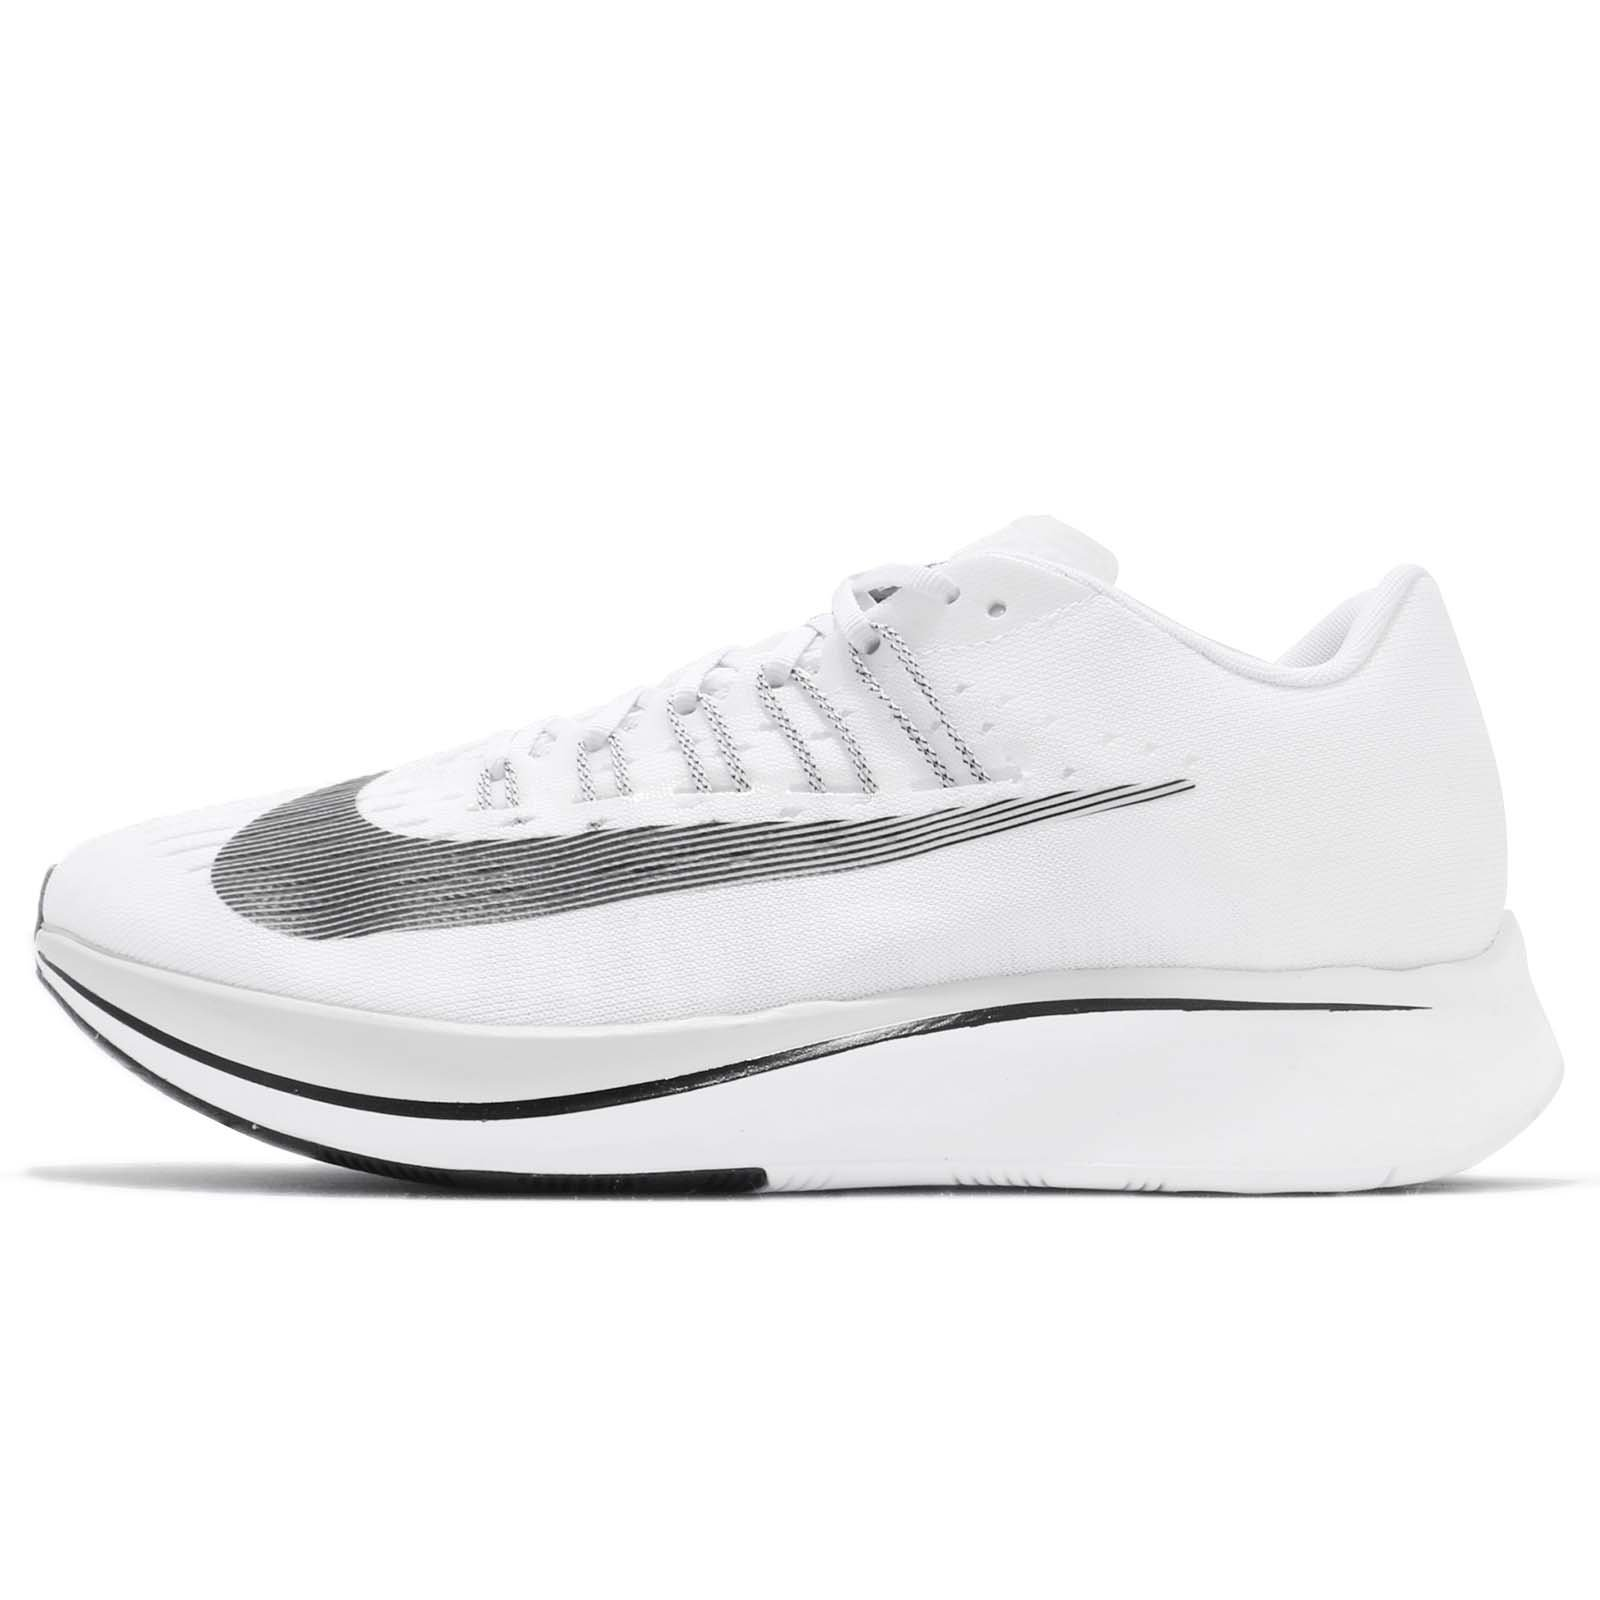 Nike Mens Zoom Fly Athletic Trainer Running Shoes White 10.5 Medium (D)